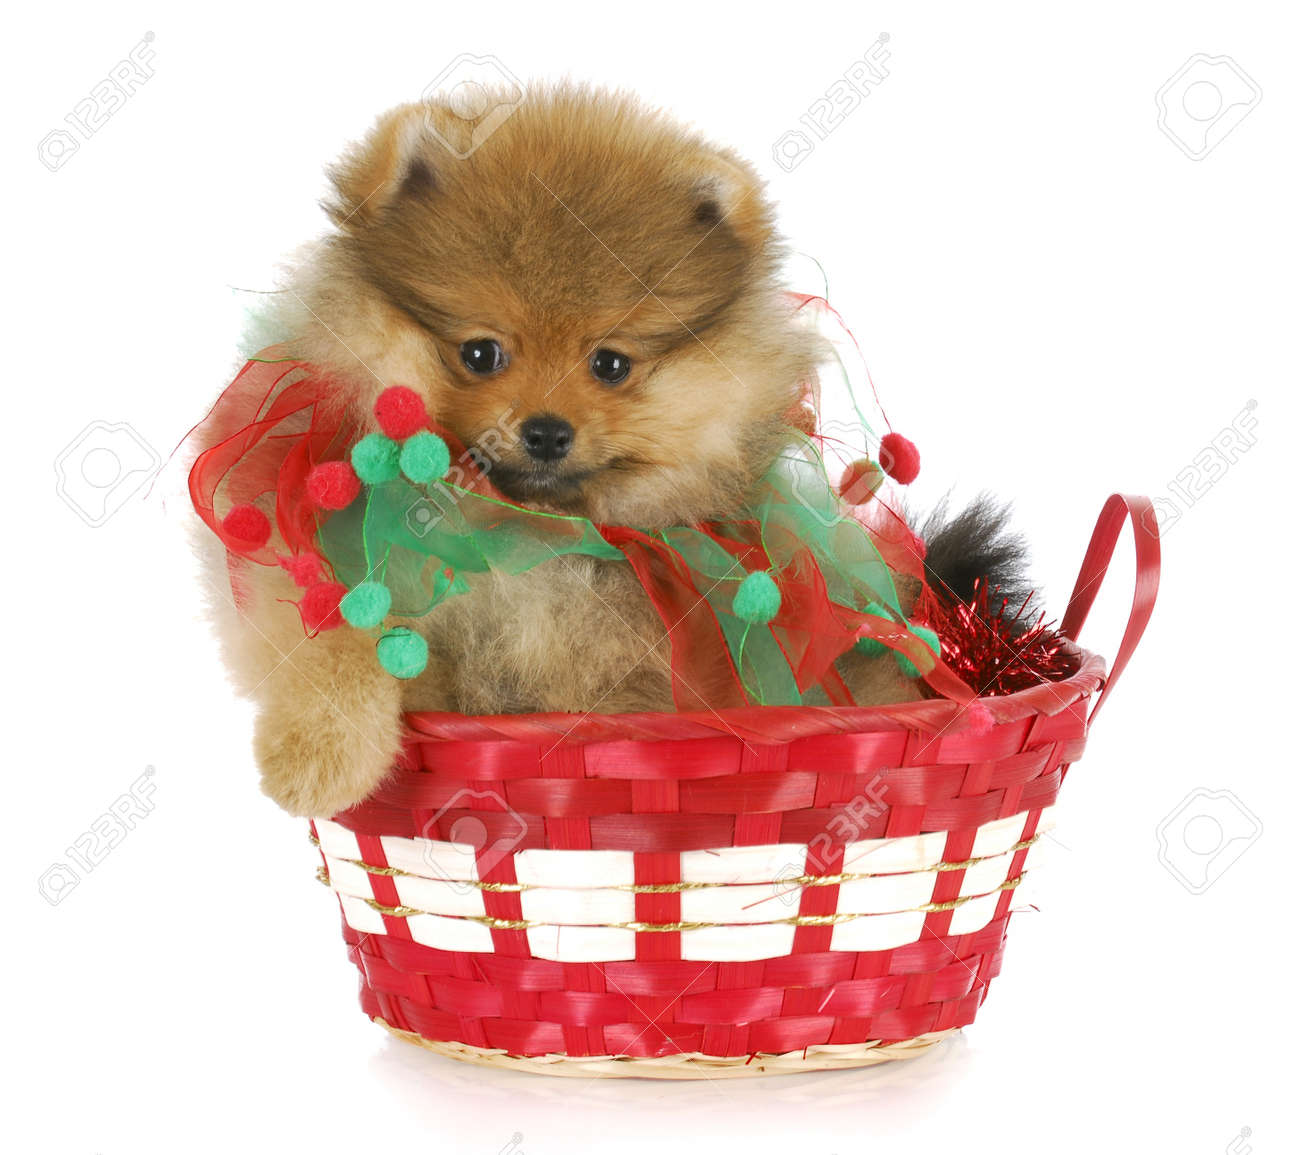 pomeranian puppy sitting in red christmas basket with reflection on white background Stock Photo - 8264114